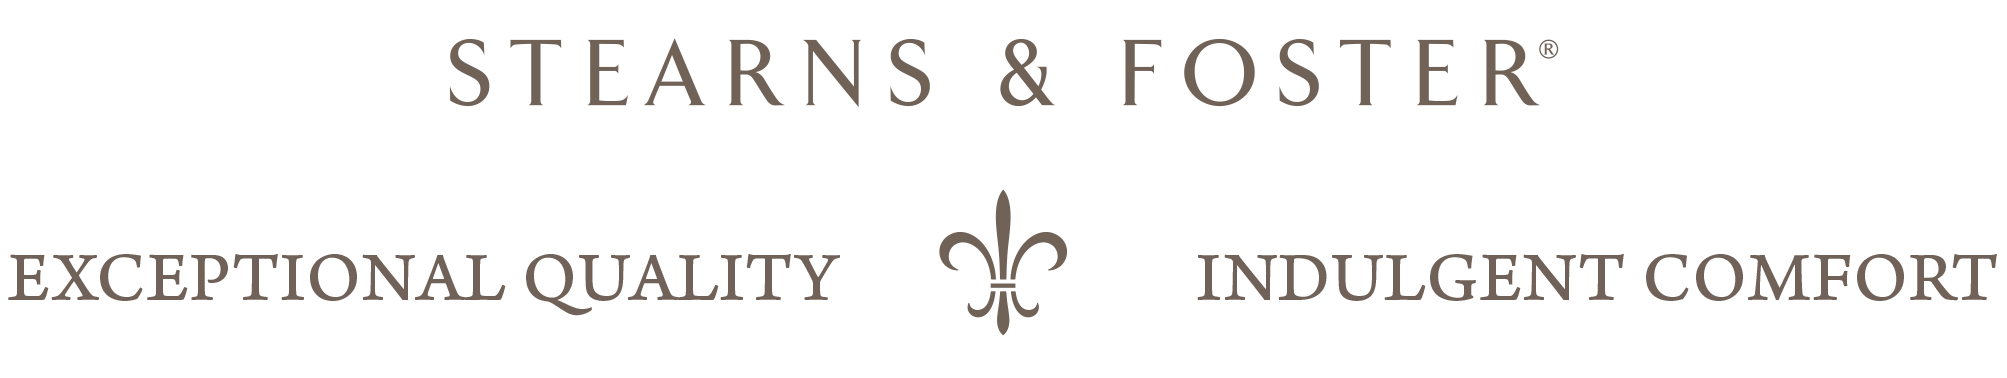 Stearns and foster logo Hybrid Stearns Foster Logo Mathis Brothers Stearns Foster Mattresses Mathis Brothers